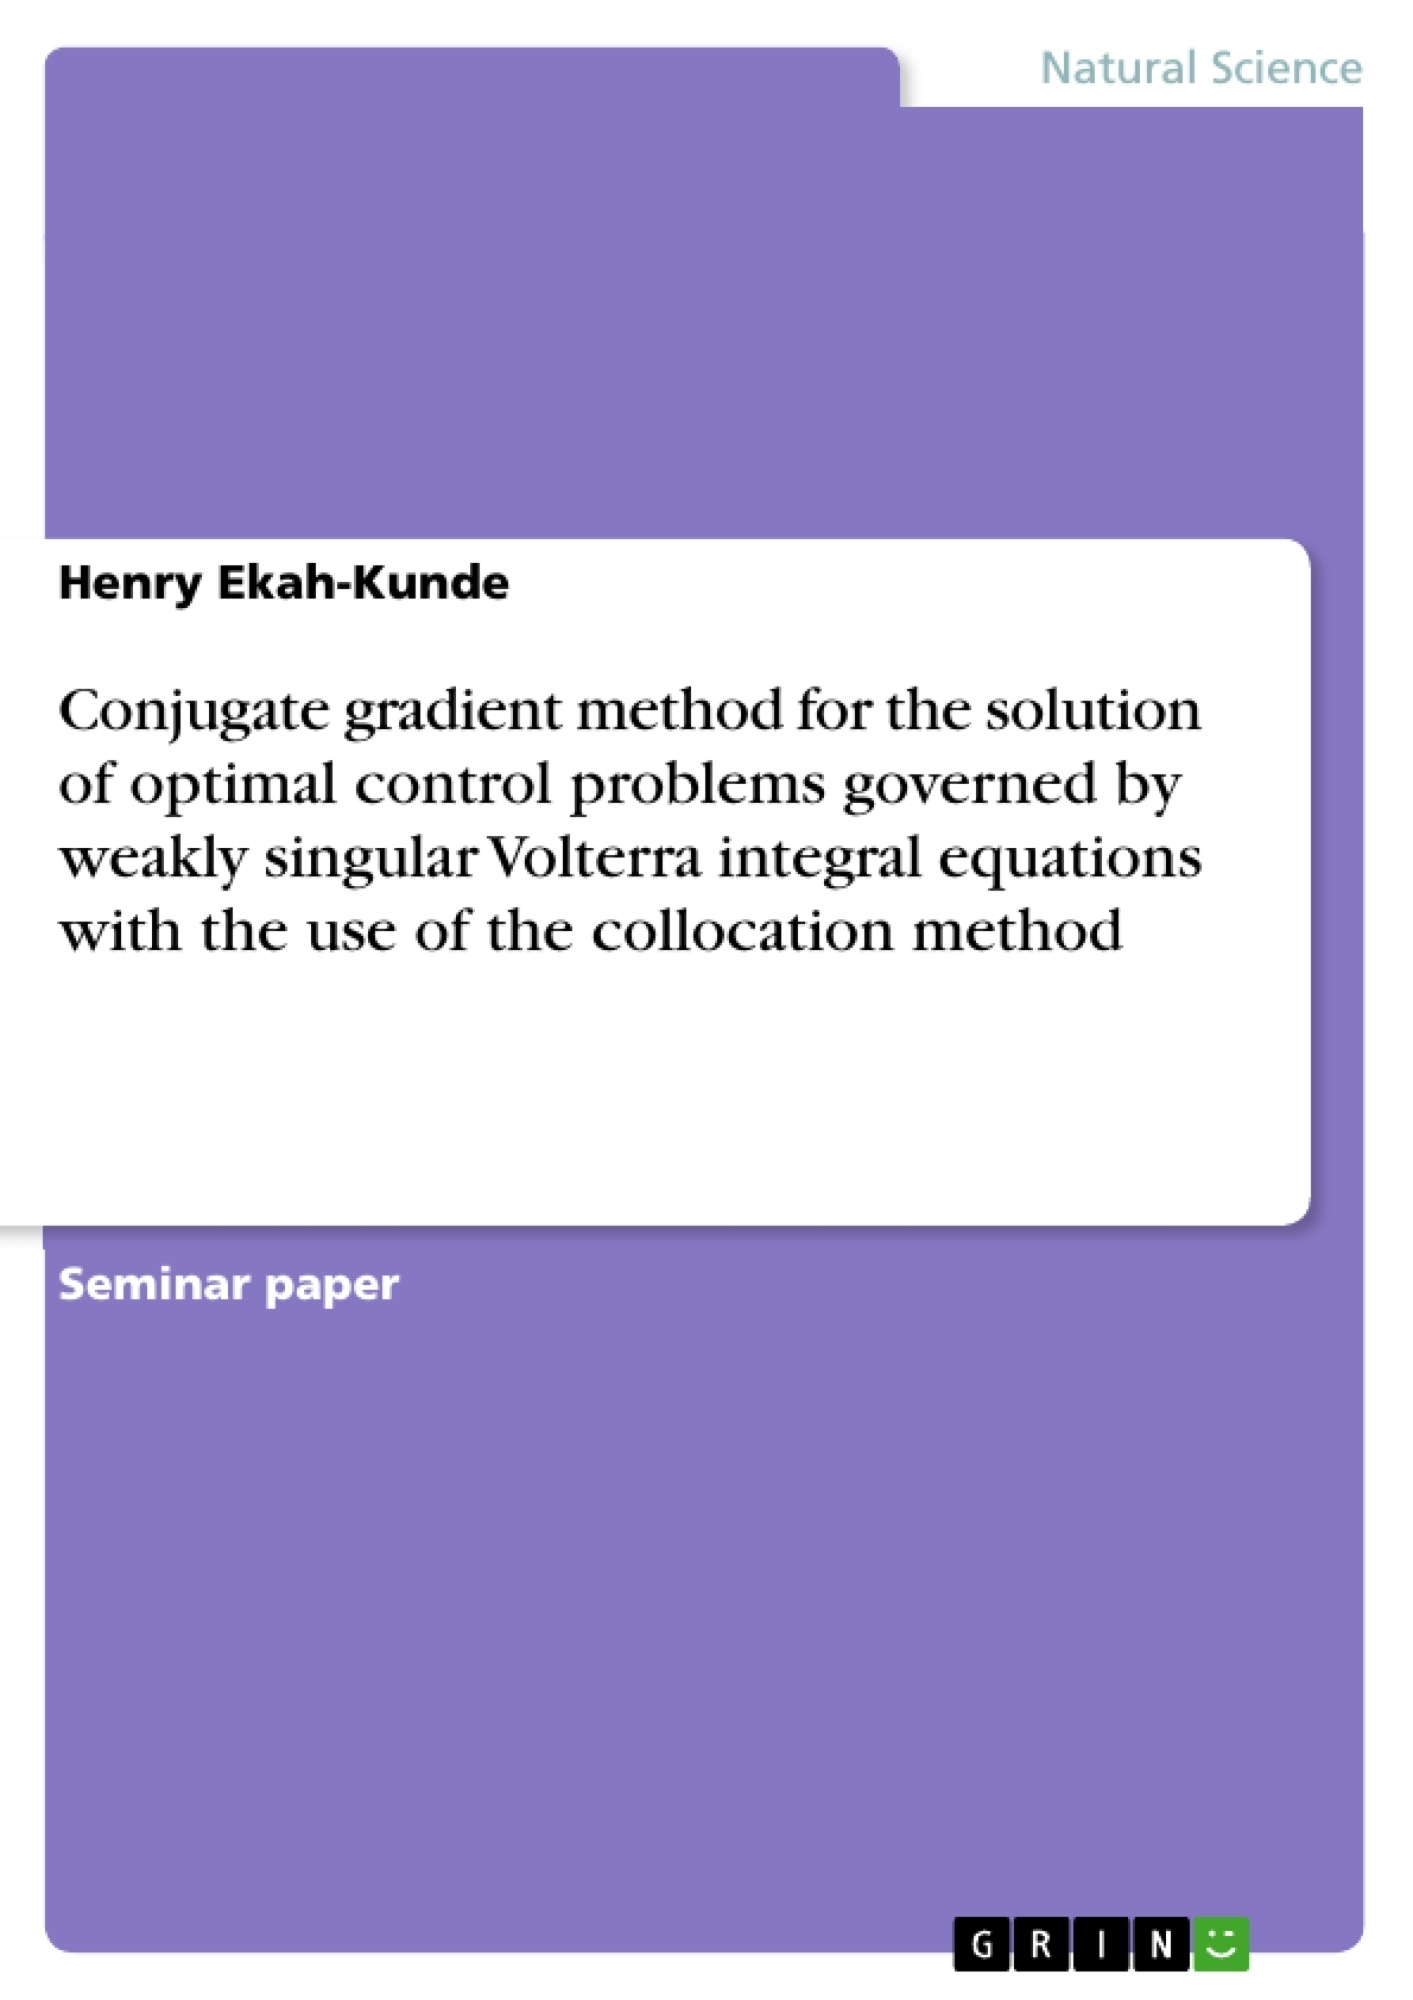 Title: Conjugate gradient method for the solution of optimal control problems governed by weakly singular Volterra integral equations with the use of the collocation method